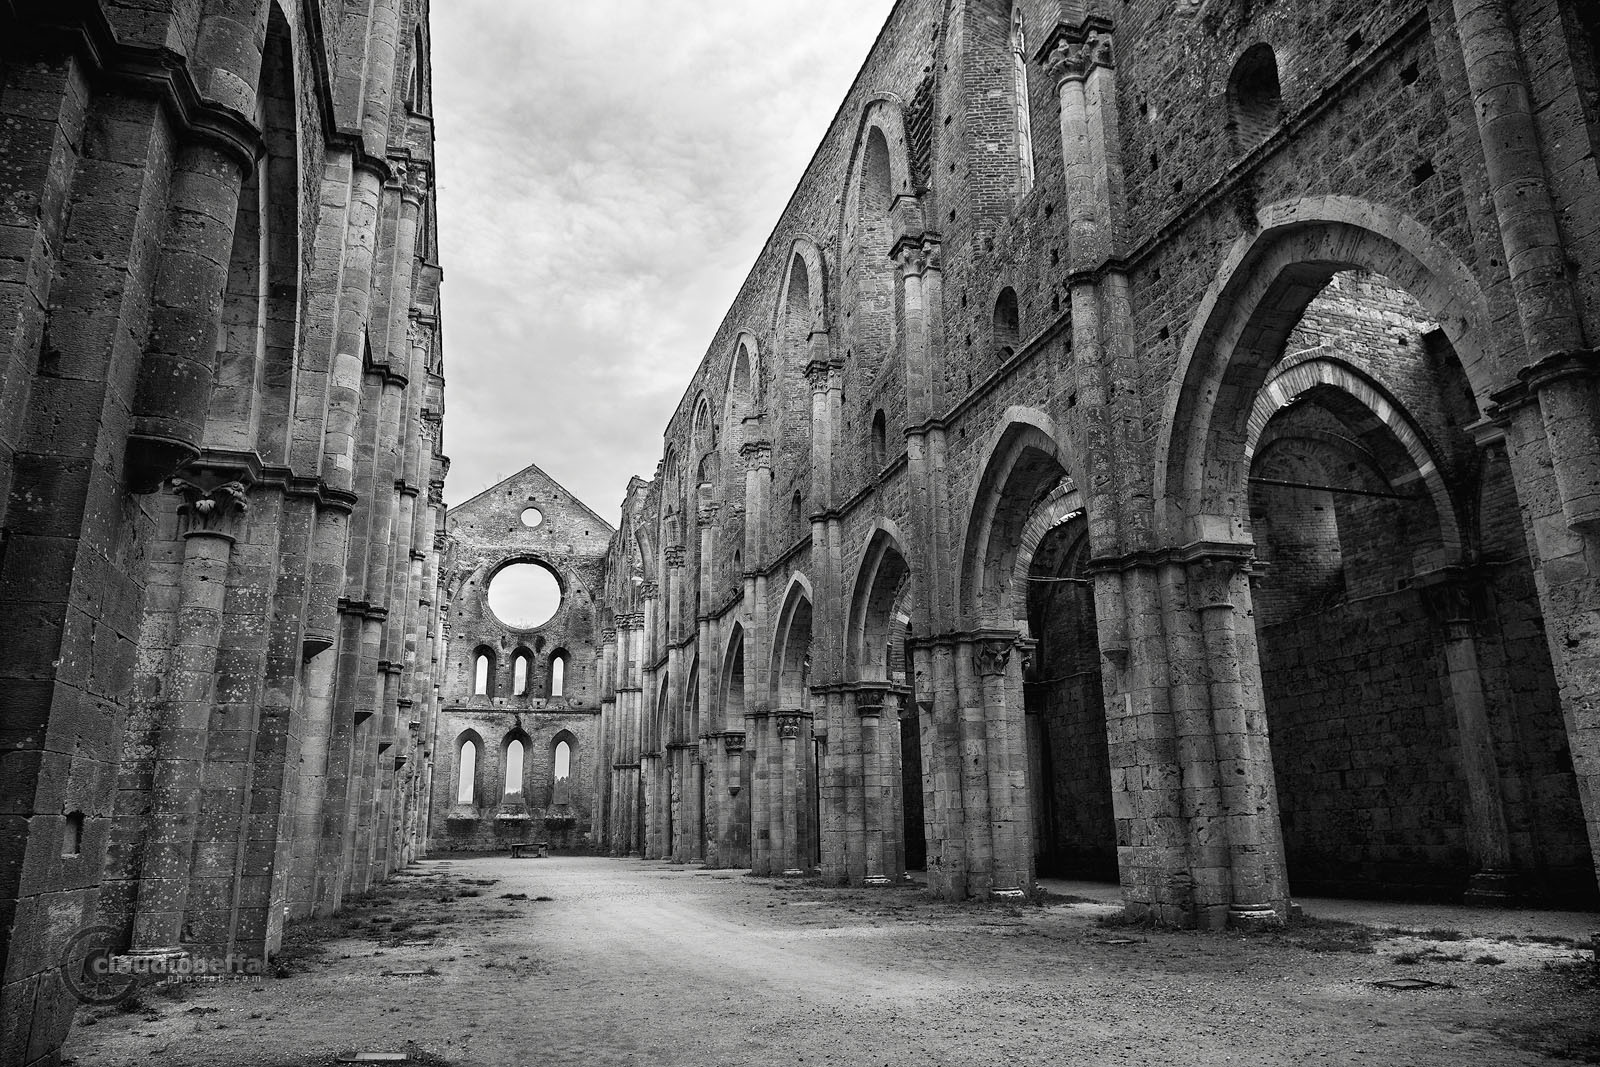 San Galgano, Abbey, Nave, Windows, Layers, Light, Shadows, Capitals, Arches, Ruin, Tuscany, Italy, Nature, History, Architecture